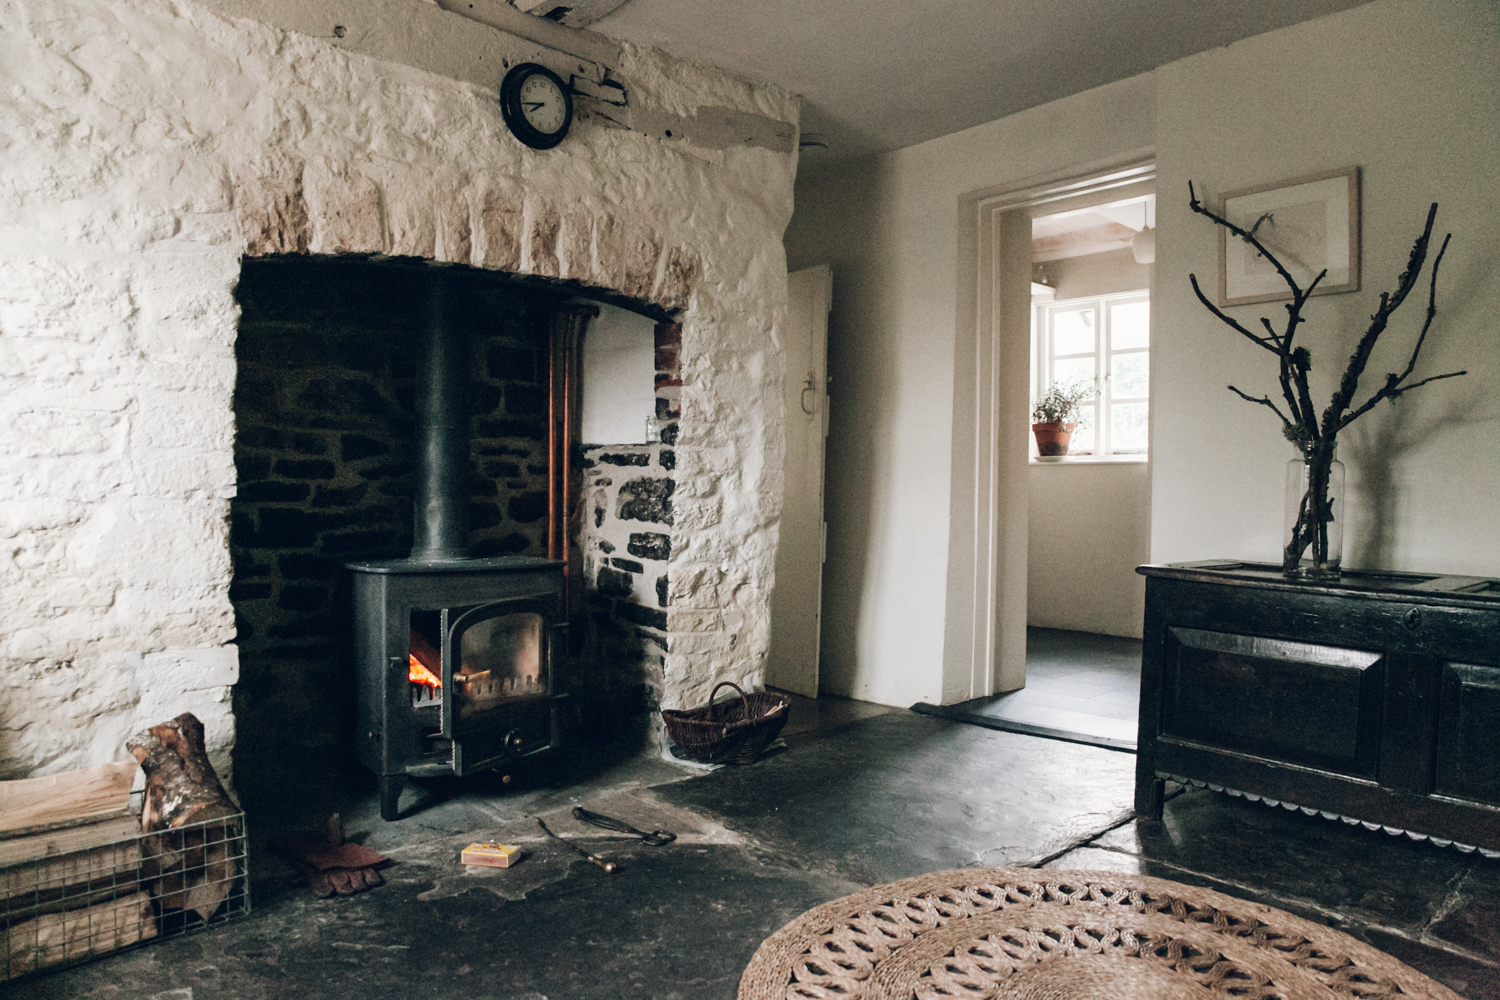 Haarkon Old Radnor Harp Cottage Wales Powys Accommodation Holiday interior home